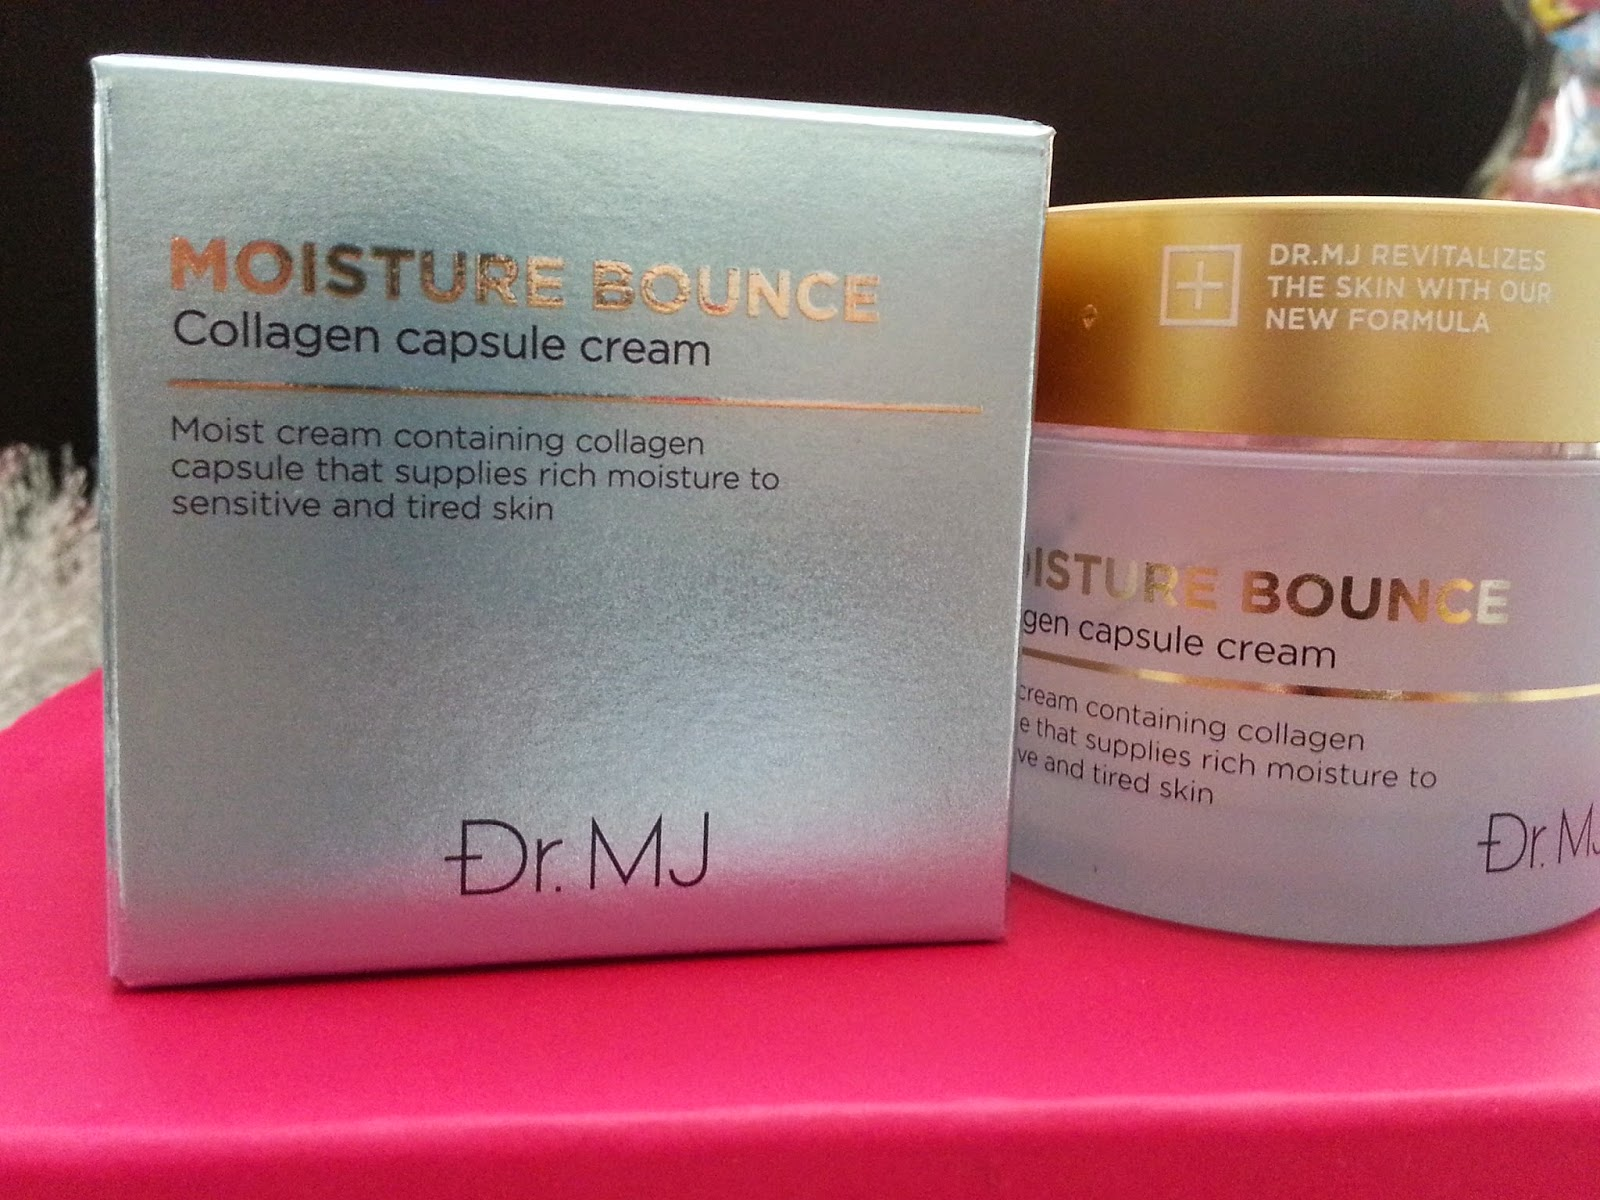 Dr. MJ Moisture Bounce Collagen Capsule Cream